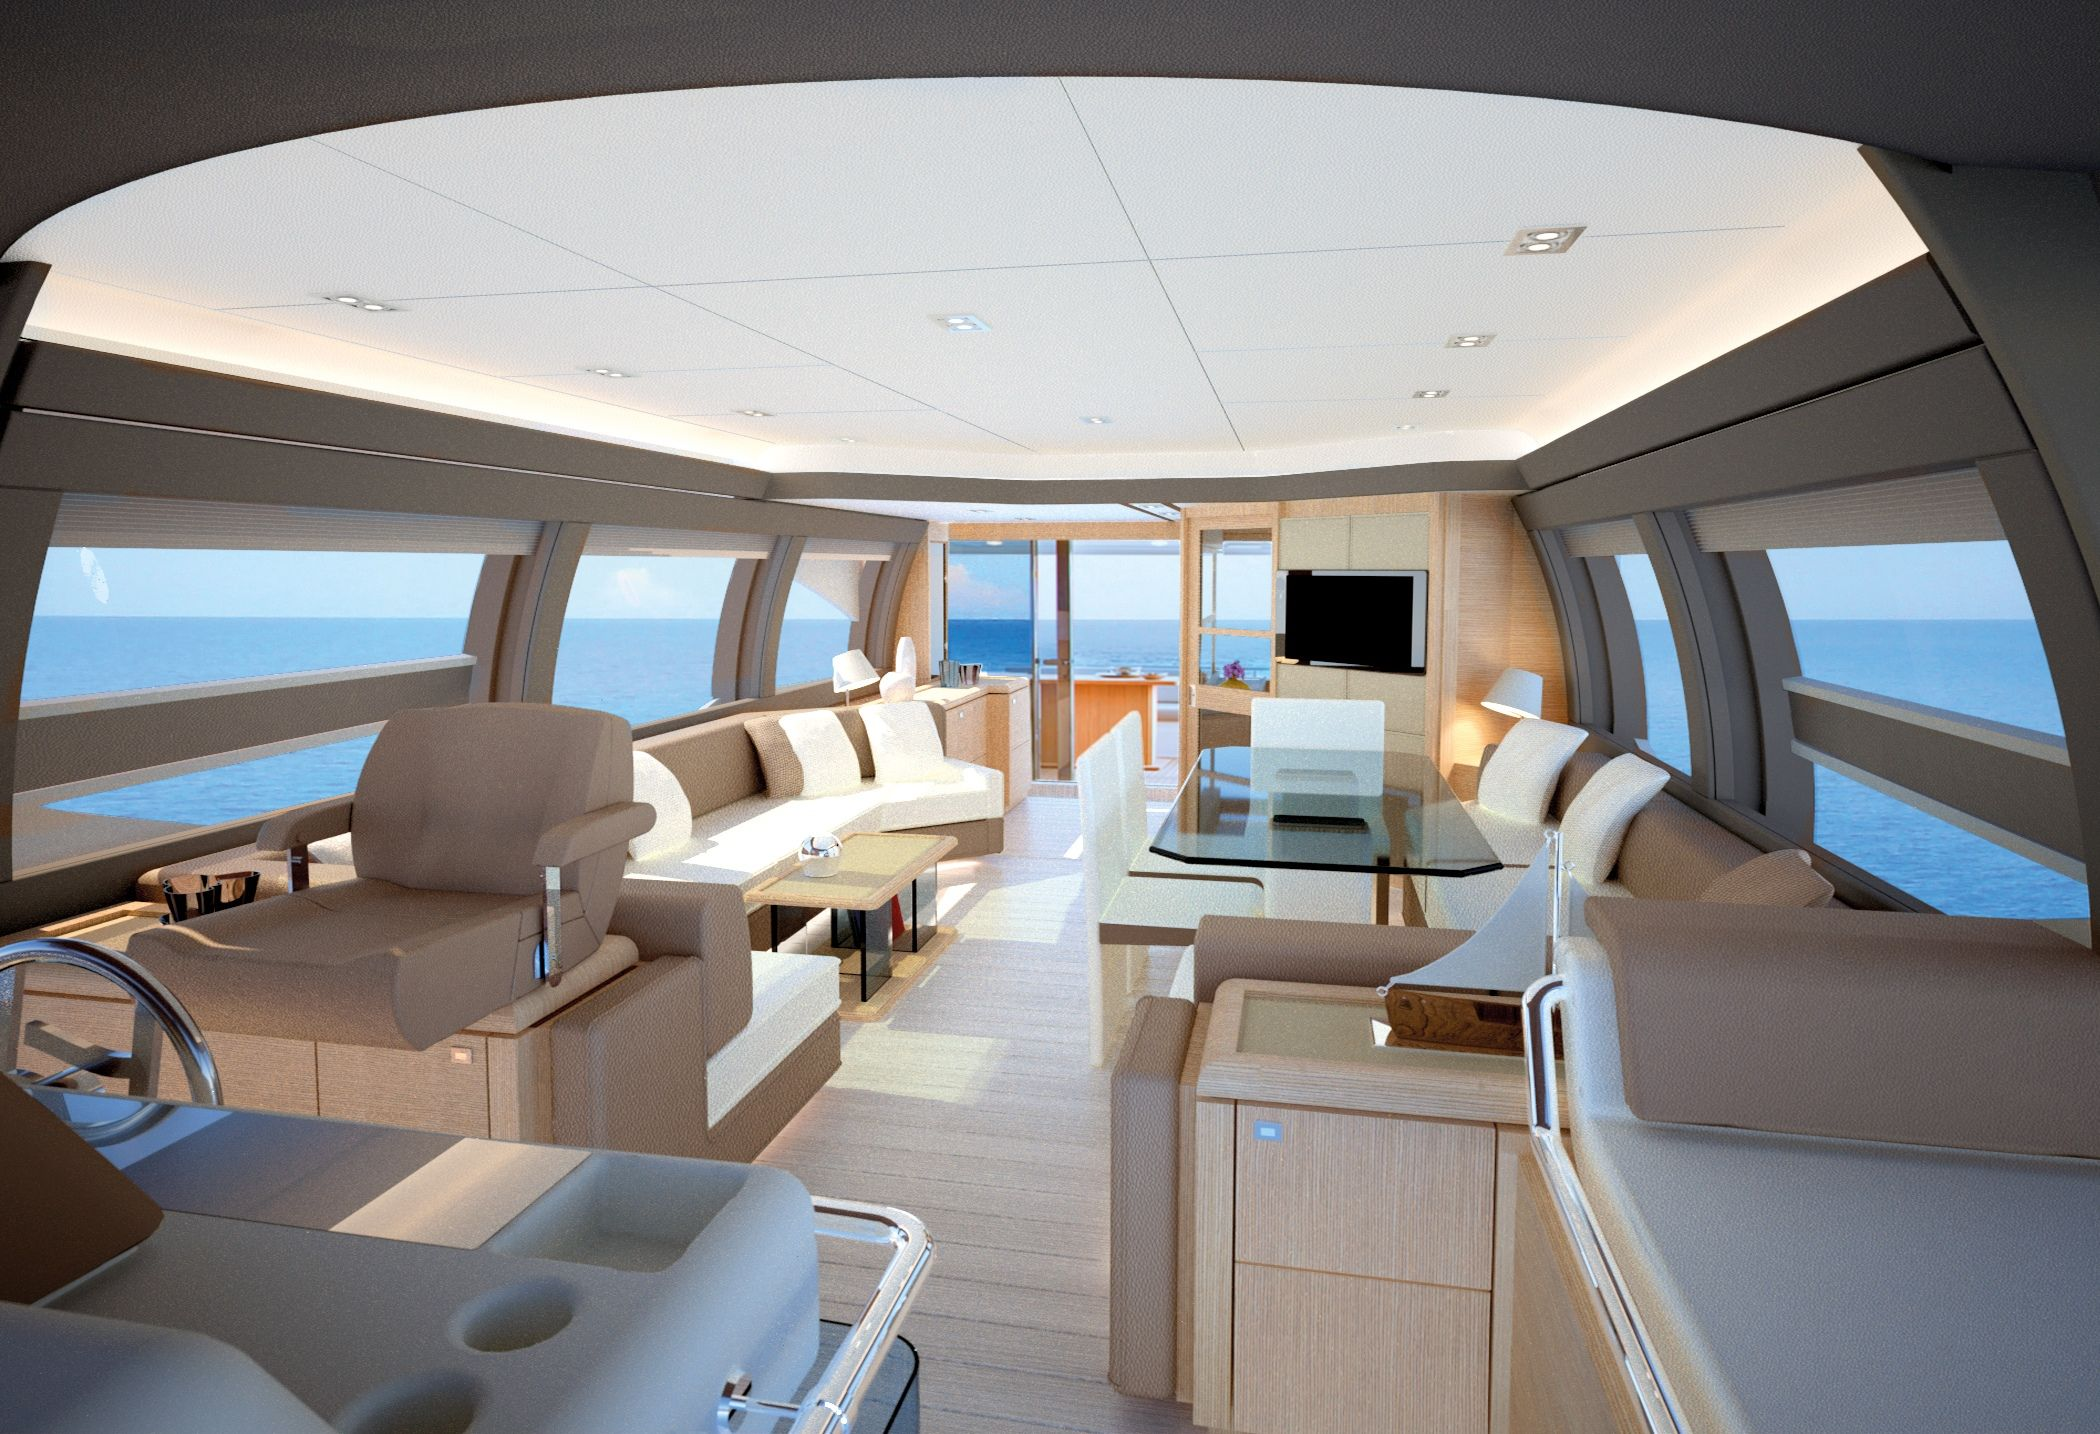 Inside Luxury Yachts Interiors Of Luxury Yachts Ferretti 690 Motor Yacht